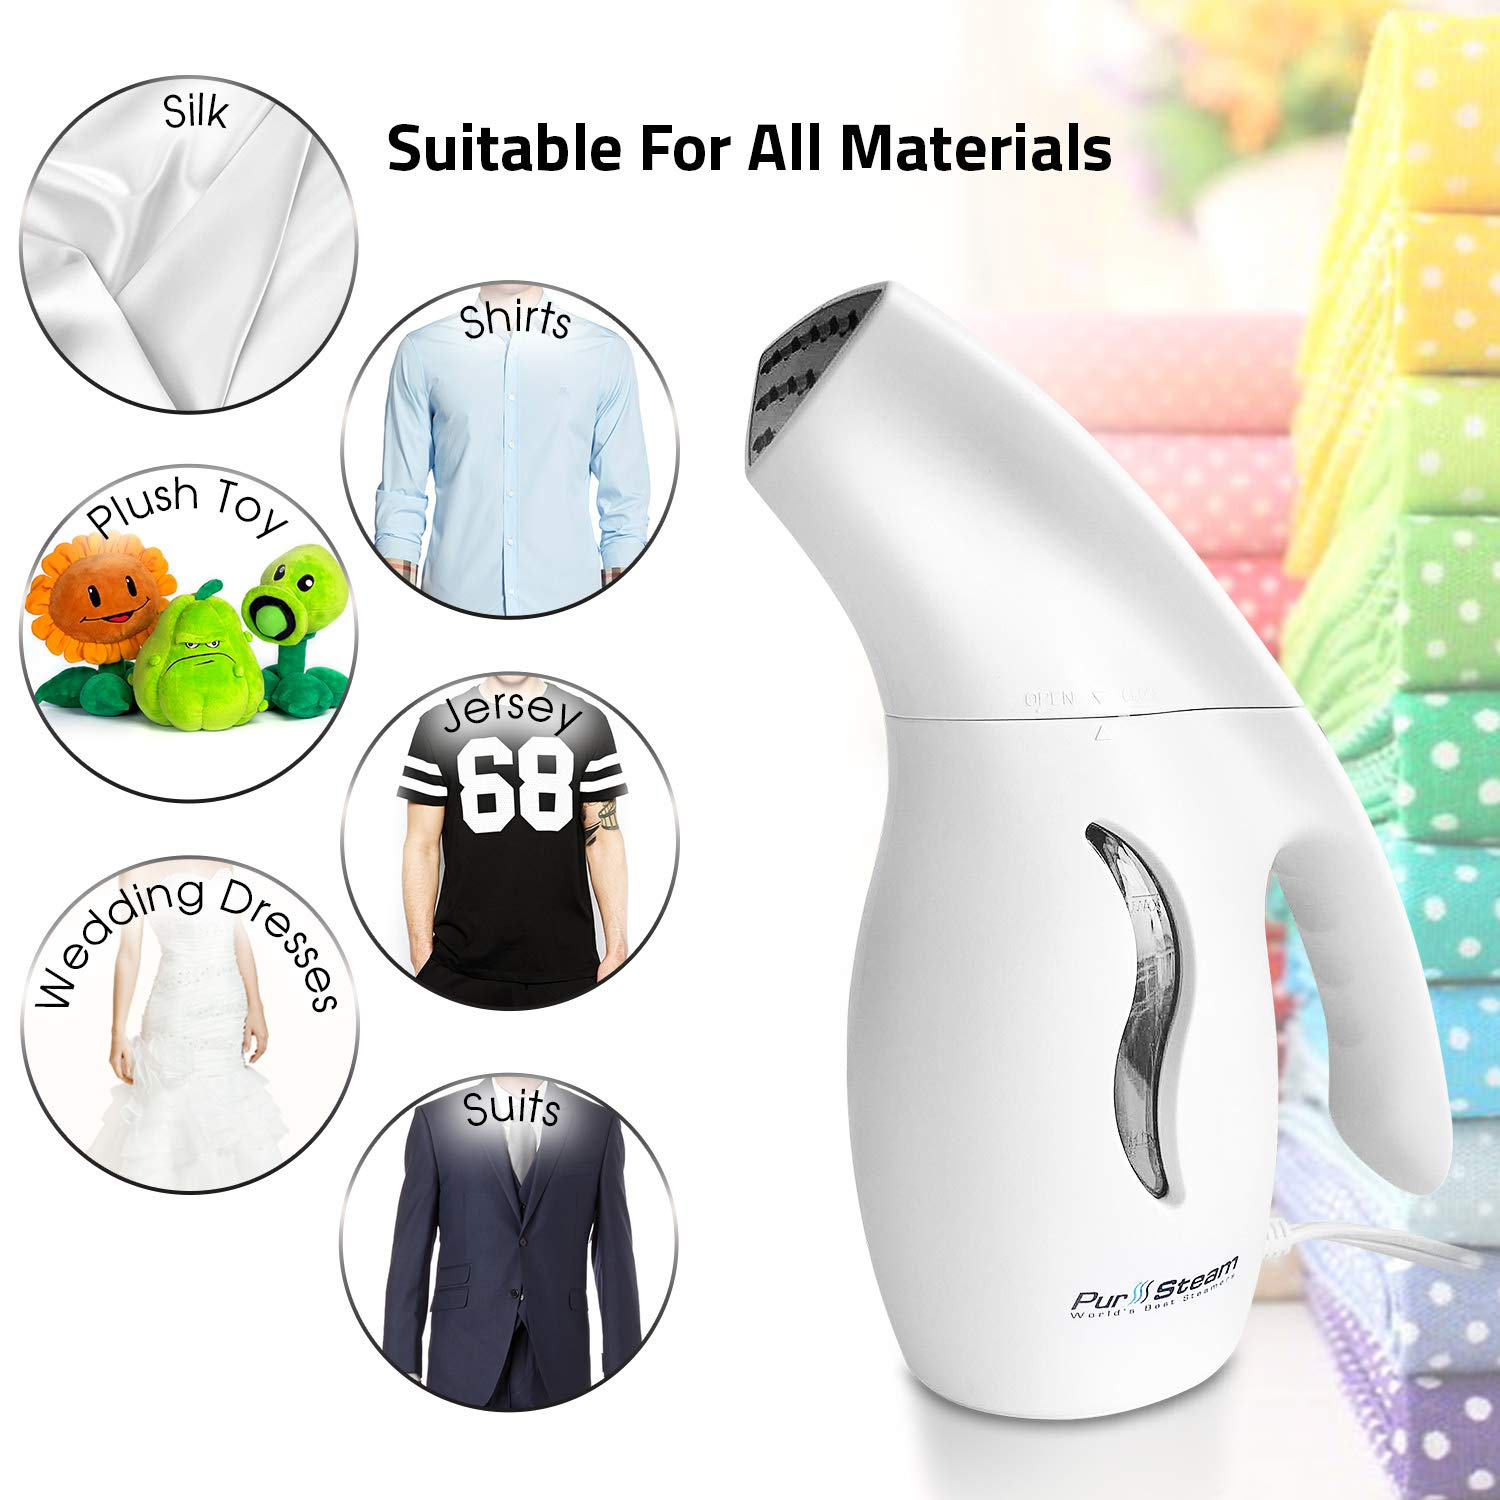 PurSteam Elite Powerful 7-1 Clothes/Garment/Fabric Steamer. Remove Wrinkles/Steam/Soften/Clean/Sanitize/Sterilize and Defrost with UltraFast-Heat Aluminum Heating Element. Perfect for Home and Travel PS-510